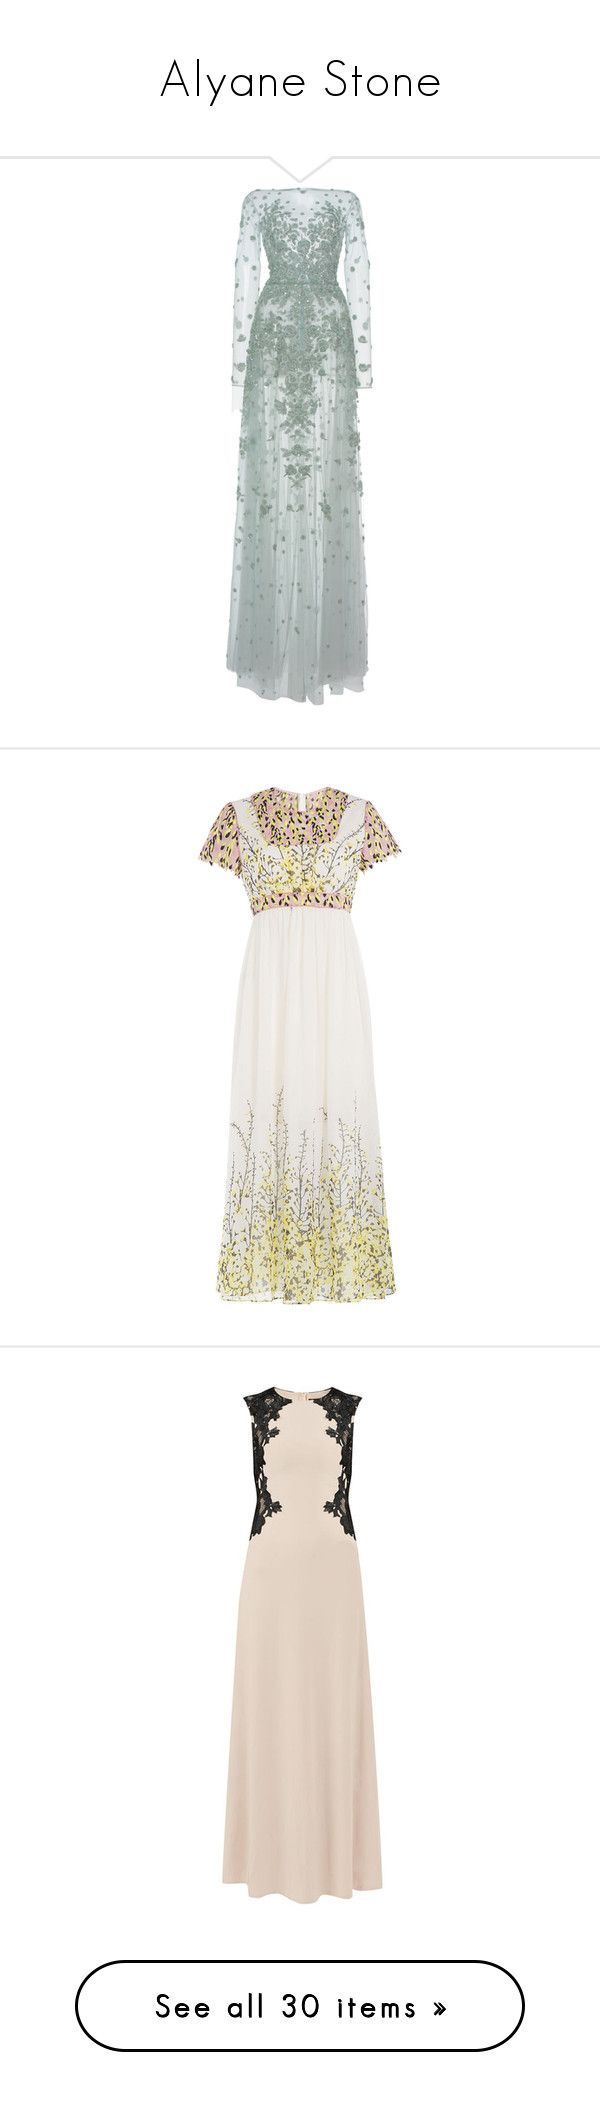 """""""Alyane Stone"""" by ofmonstersandmen1 ❤ liked on Polyvore featuring dresses, gowns, light blue, light blue long dress, green gown, floral print maxi dress, maxi dress, floral maxi dress, multicolor and white dresses"""